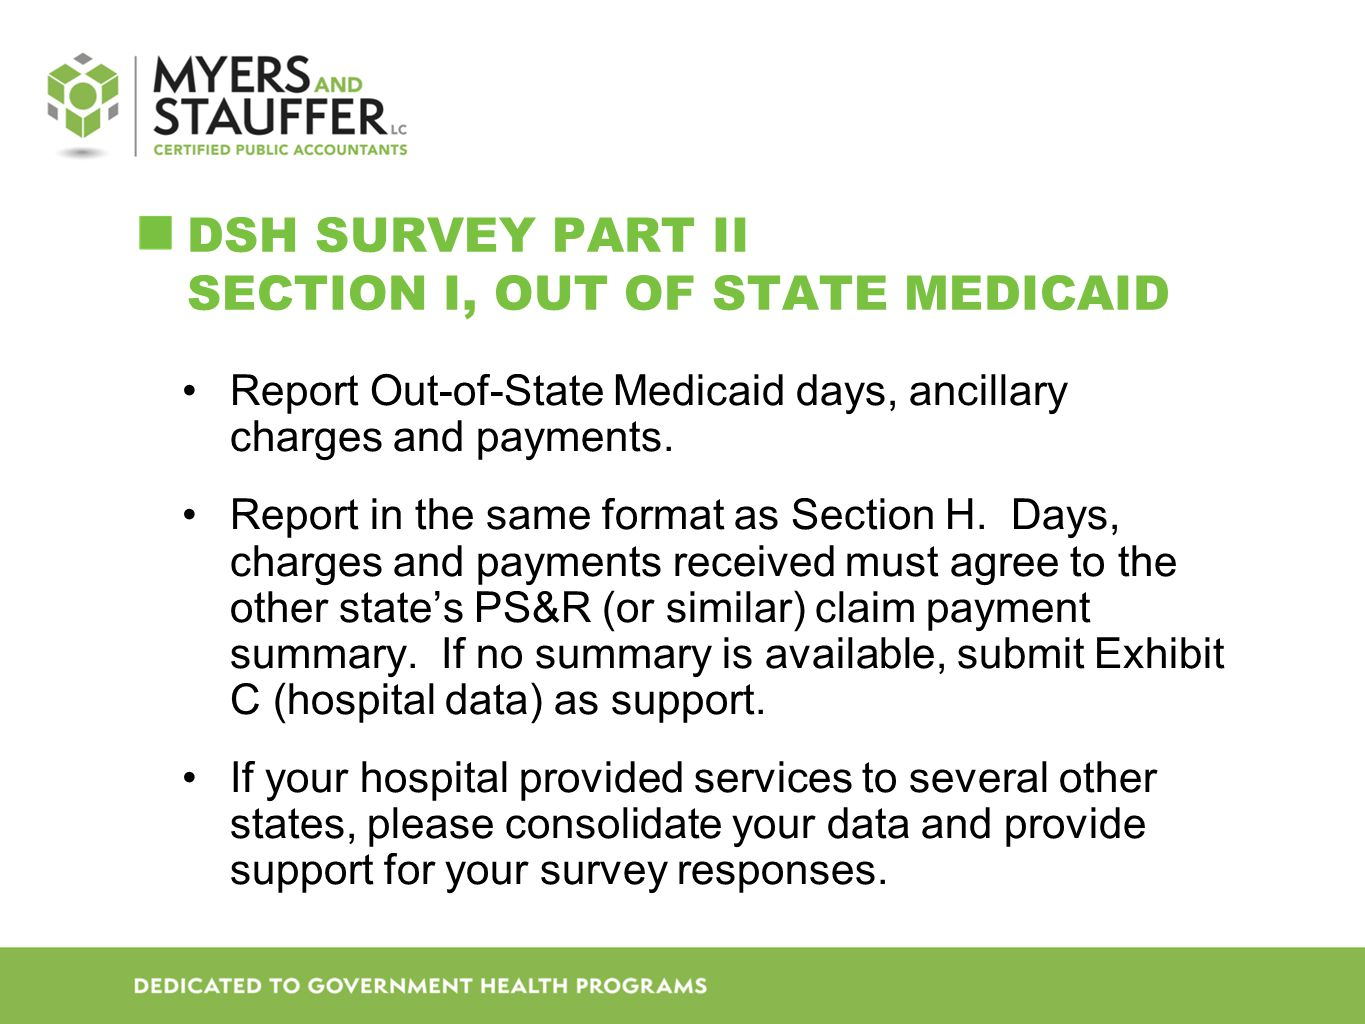 DSH SURVEY PART II SECTION I, OUT OF STATE MEDICAID Report Out-of-State Medicaid days, ancillary charges and payments.